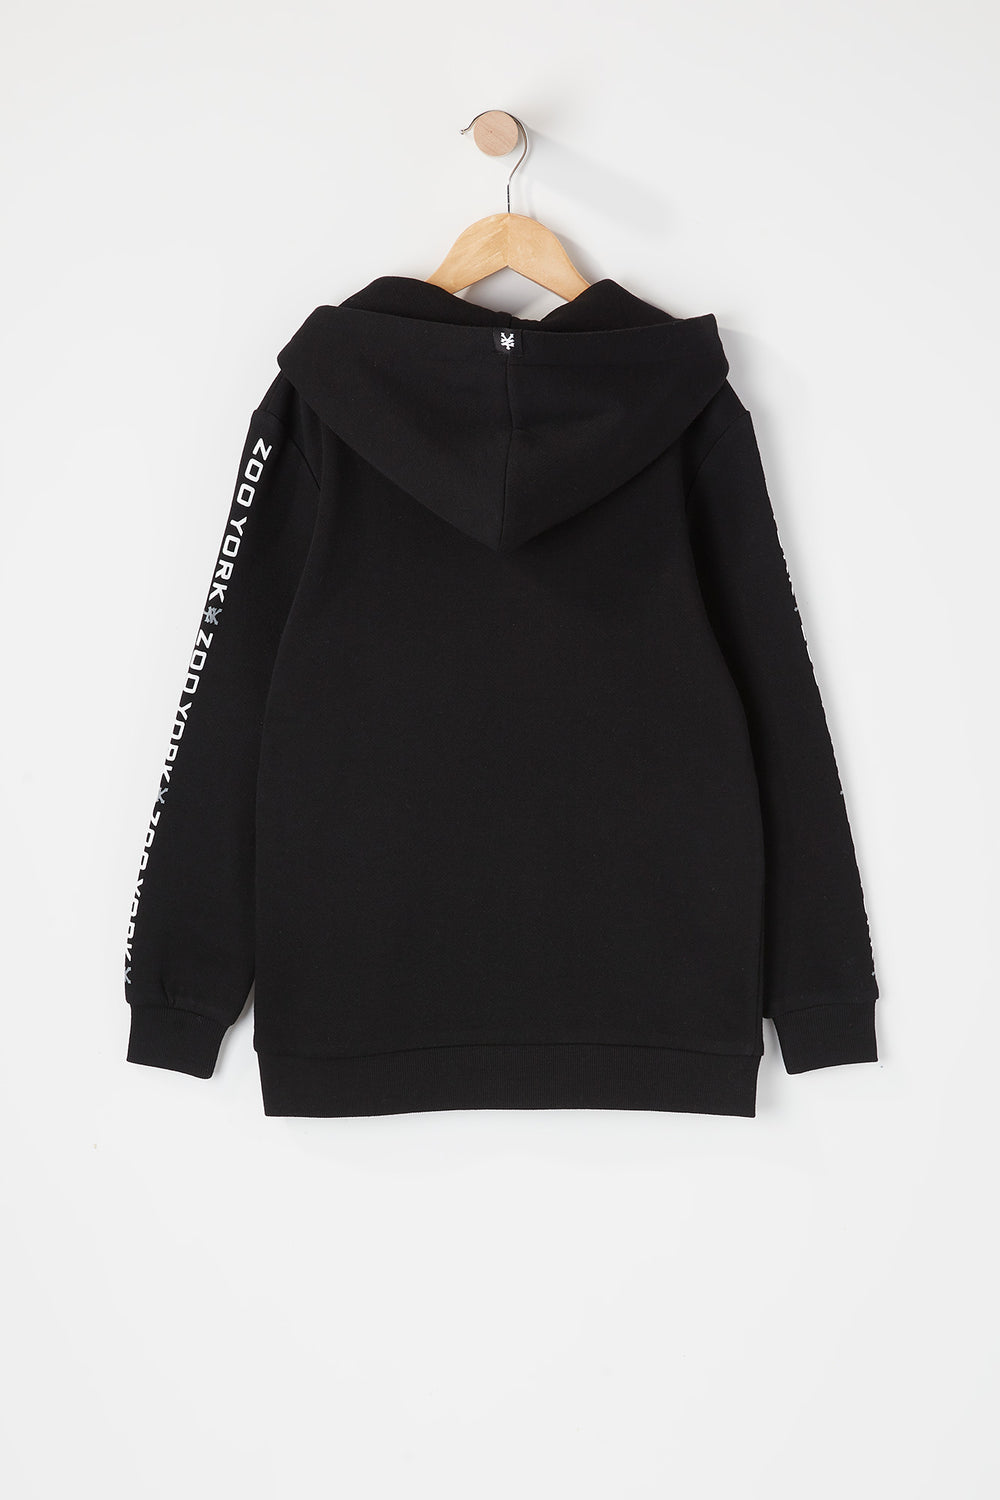 Zoo York Youth Box Logo Popover Hoodie Black